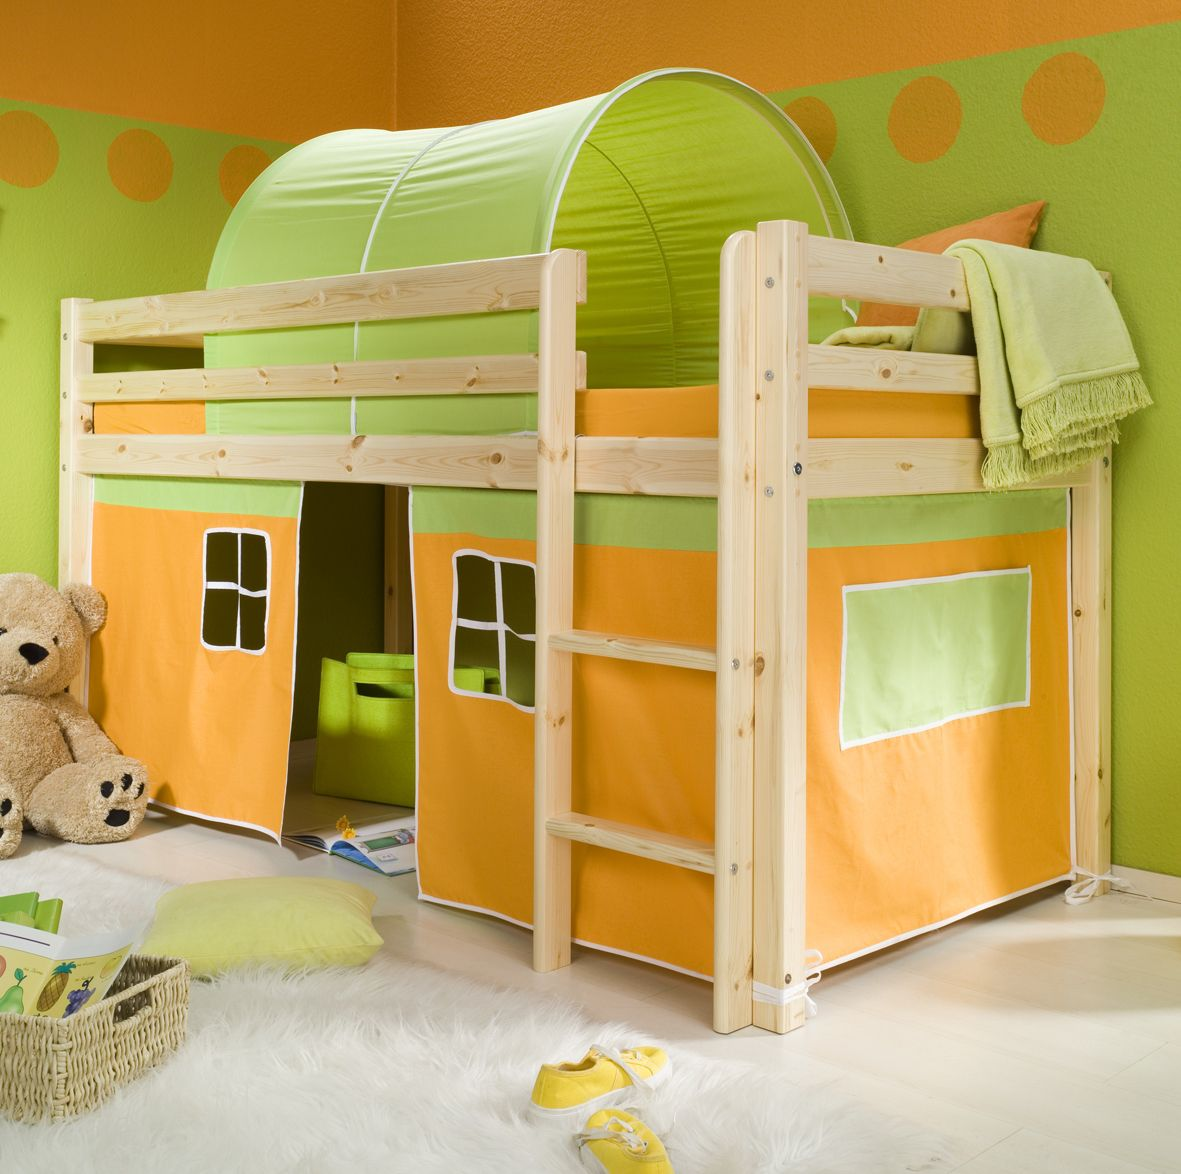 Superb Kids Bed Tent Part - 9: 18 Amusing Kids Bed Tent Canopy Picture Inspiration